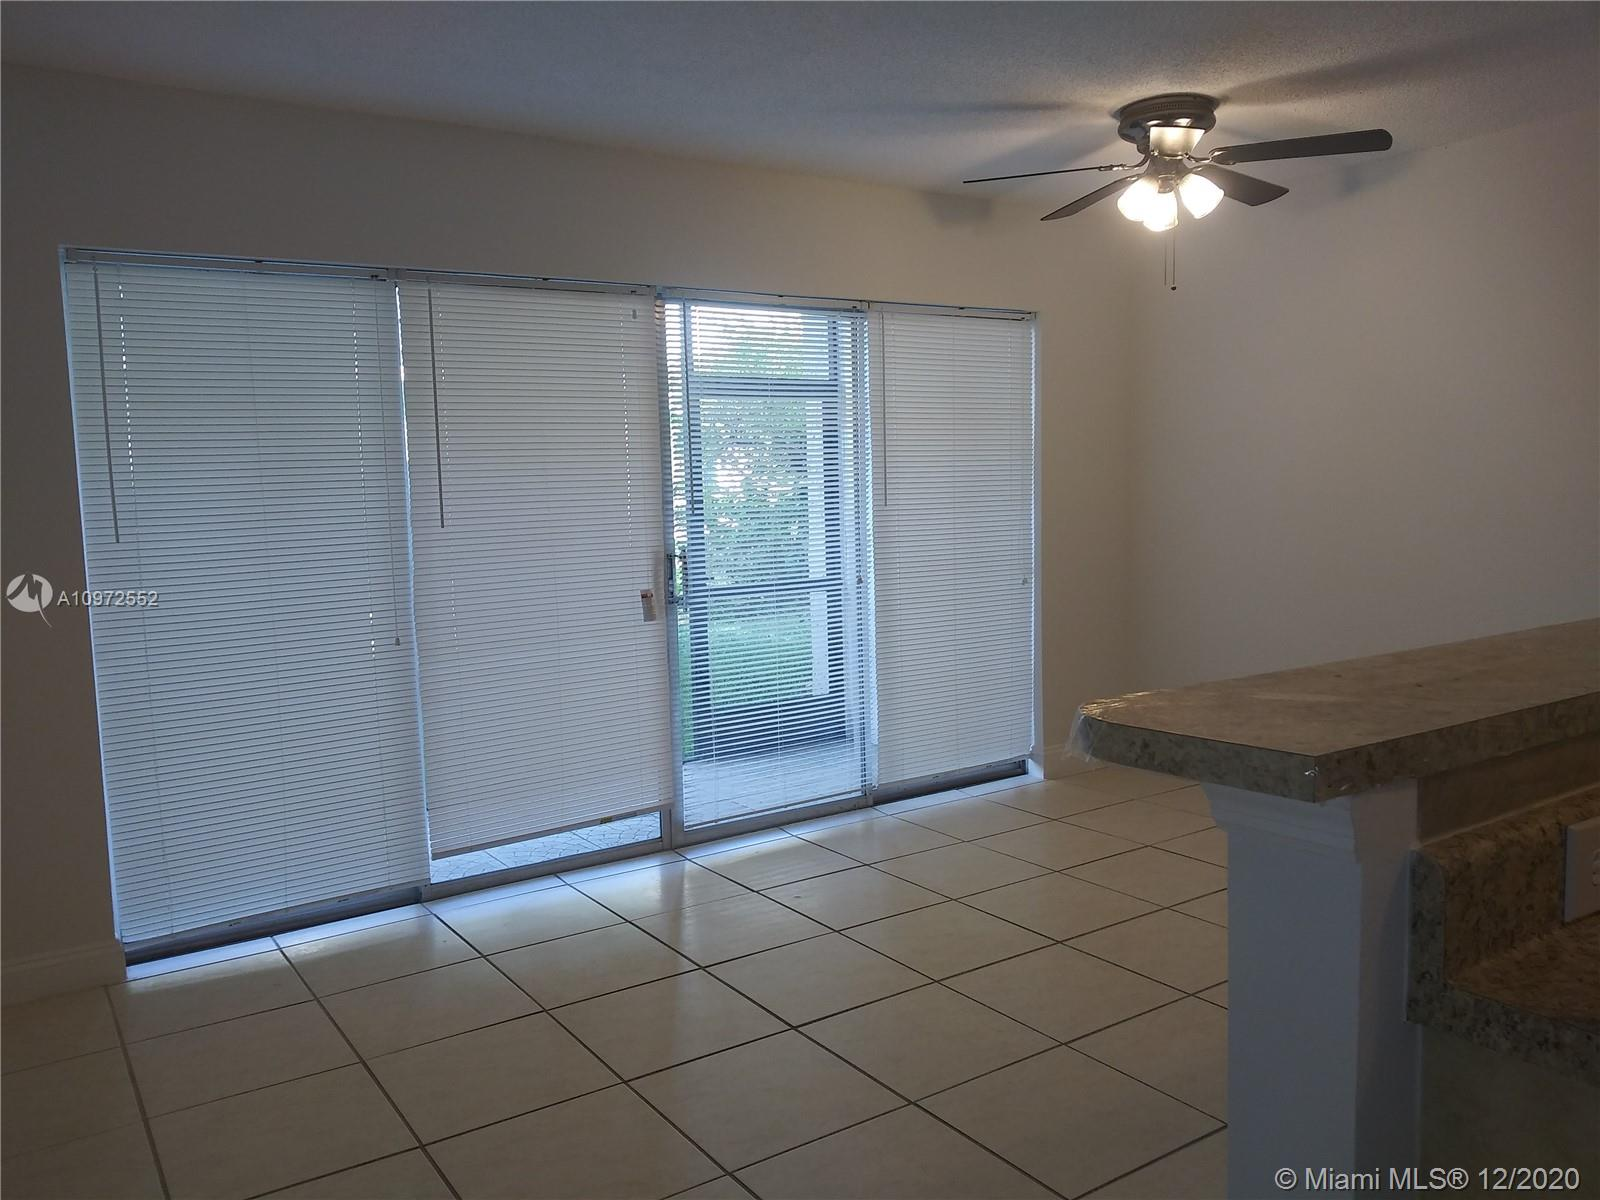 *** 2/1 1ST FLOOR CONDO IN HIGHLY DESIRABLE GATED COMPLEX IN OAKLAND PARK ***NEWER A/C UNIT *** BATHROOM HAS BEEN COMPLETELY REMODELED *** TILE THROUGHOUT ENTIRE CONDO. NO CARPET. CANNOT RENT FOR FIRST 2 YEARS. CONTACT OWNER FOR ALL SHOWINGS